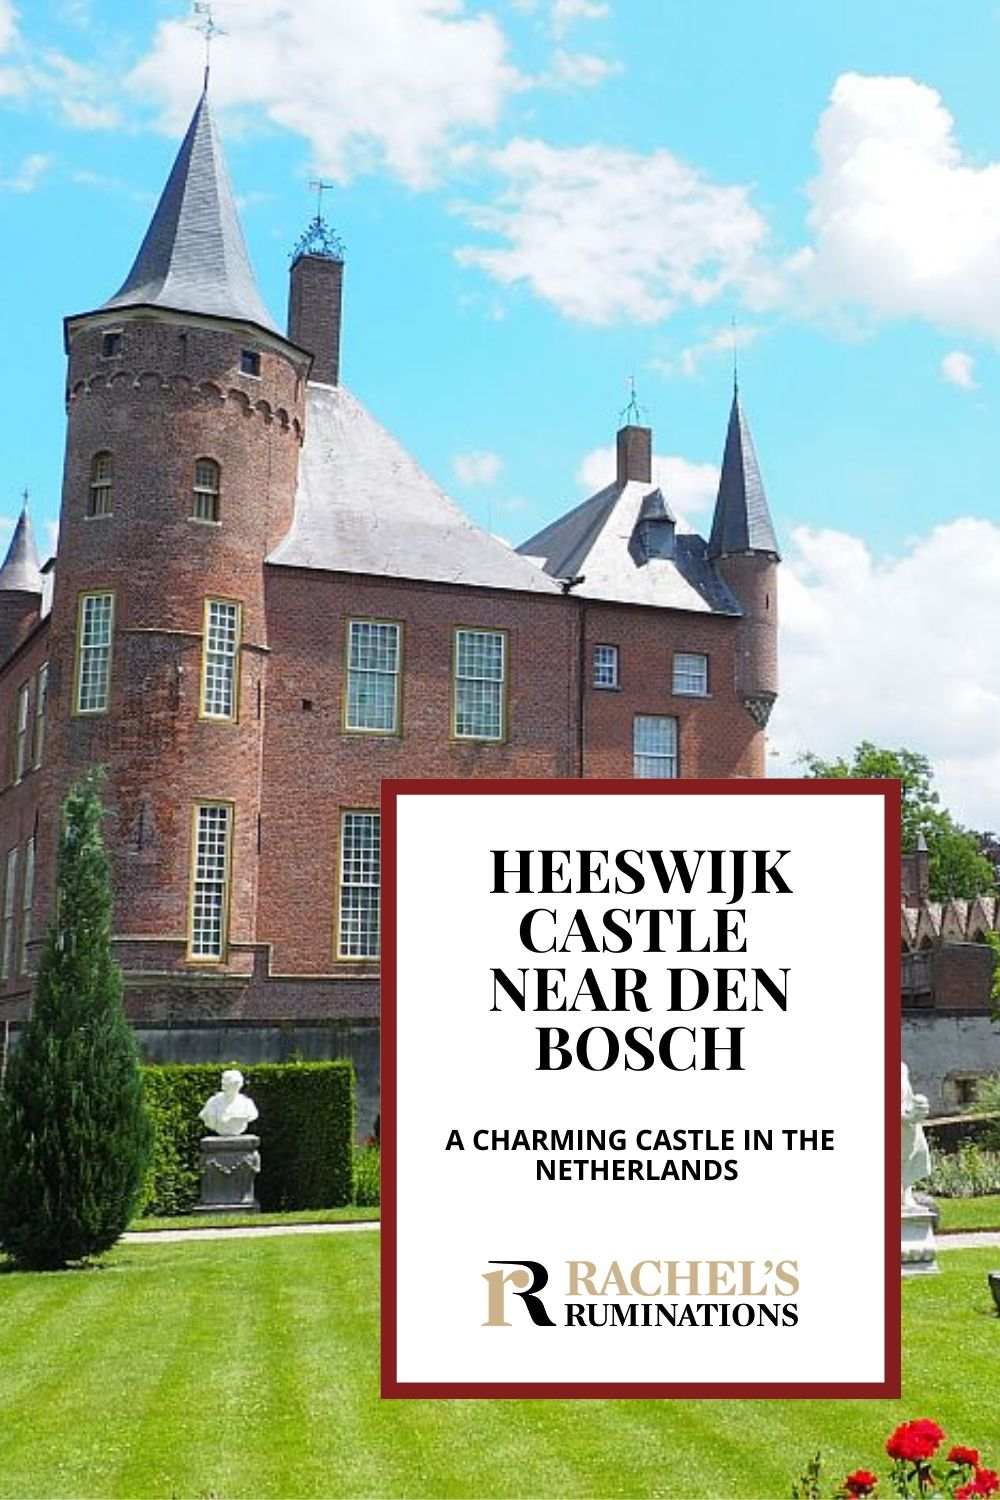 Heeswijk Castle near Den Bosch is a picturesque castle with interesting history (including a very odd will!) and a lovely garden for a stroll. Read all about it here! via @rachelsruminations